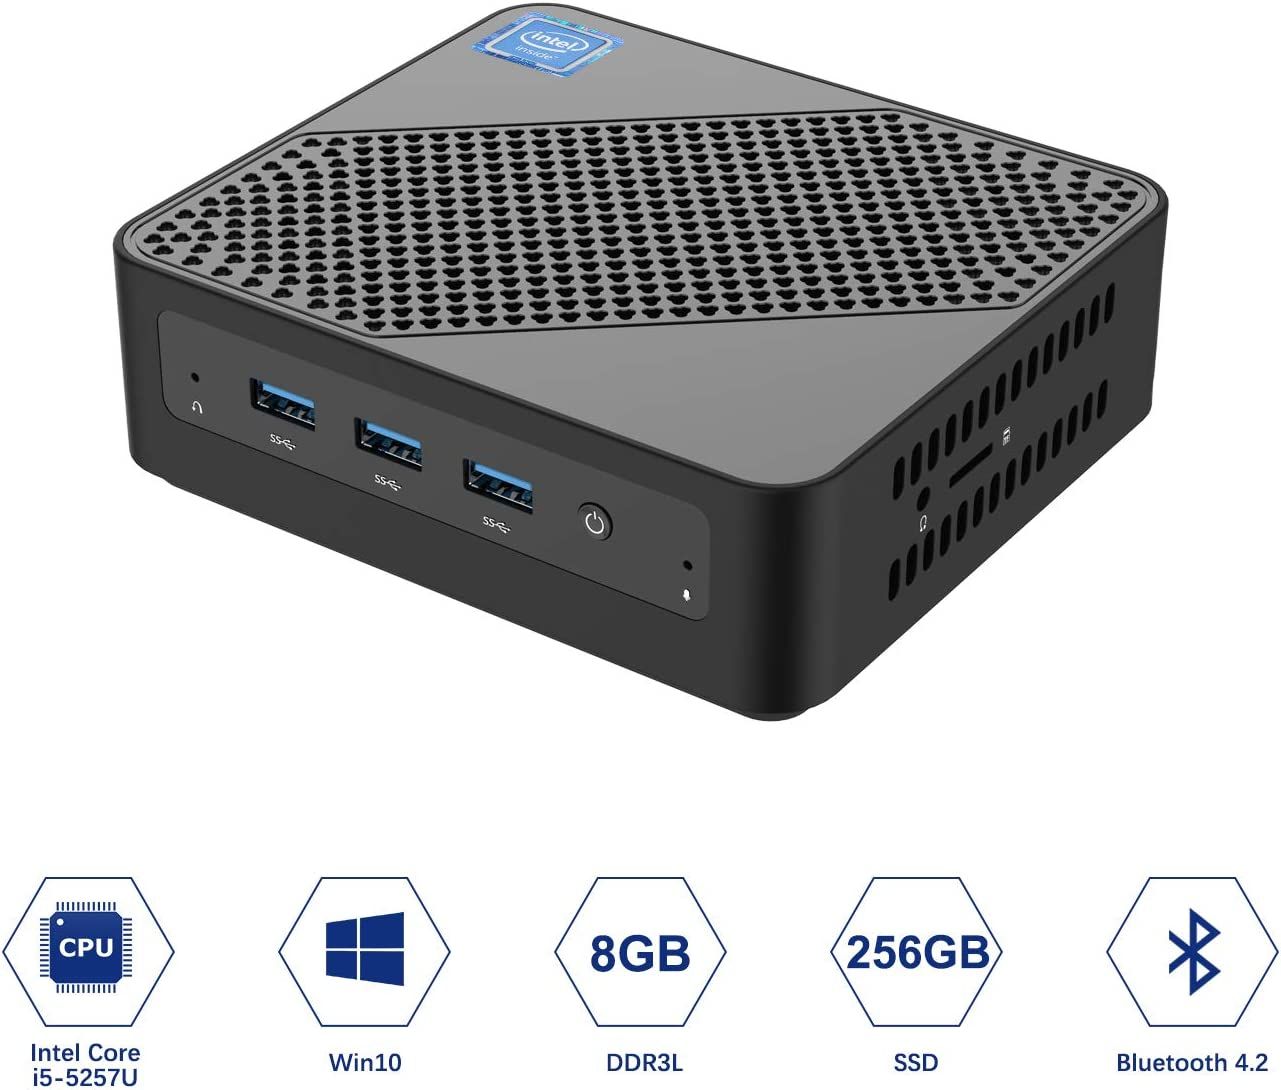 U700 Mini PC Intel Core i5-5257U Windows 10 Pro Mini PC Desktop Computer,Expandable RAM 8GB DDR3L+256GB SSD, HDMI/Mini DP/USB-C 4K Salida, 2 x Ethernet, 3 x USB 3.0,Support Chromium & Linux OS